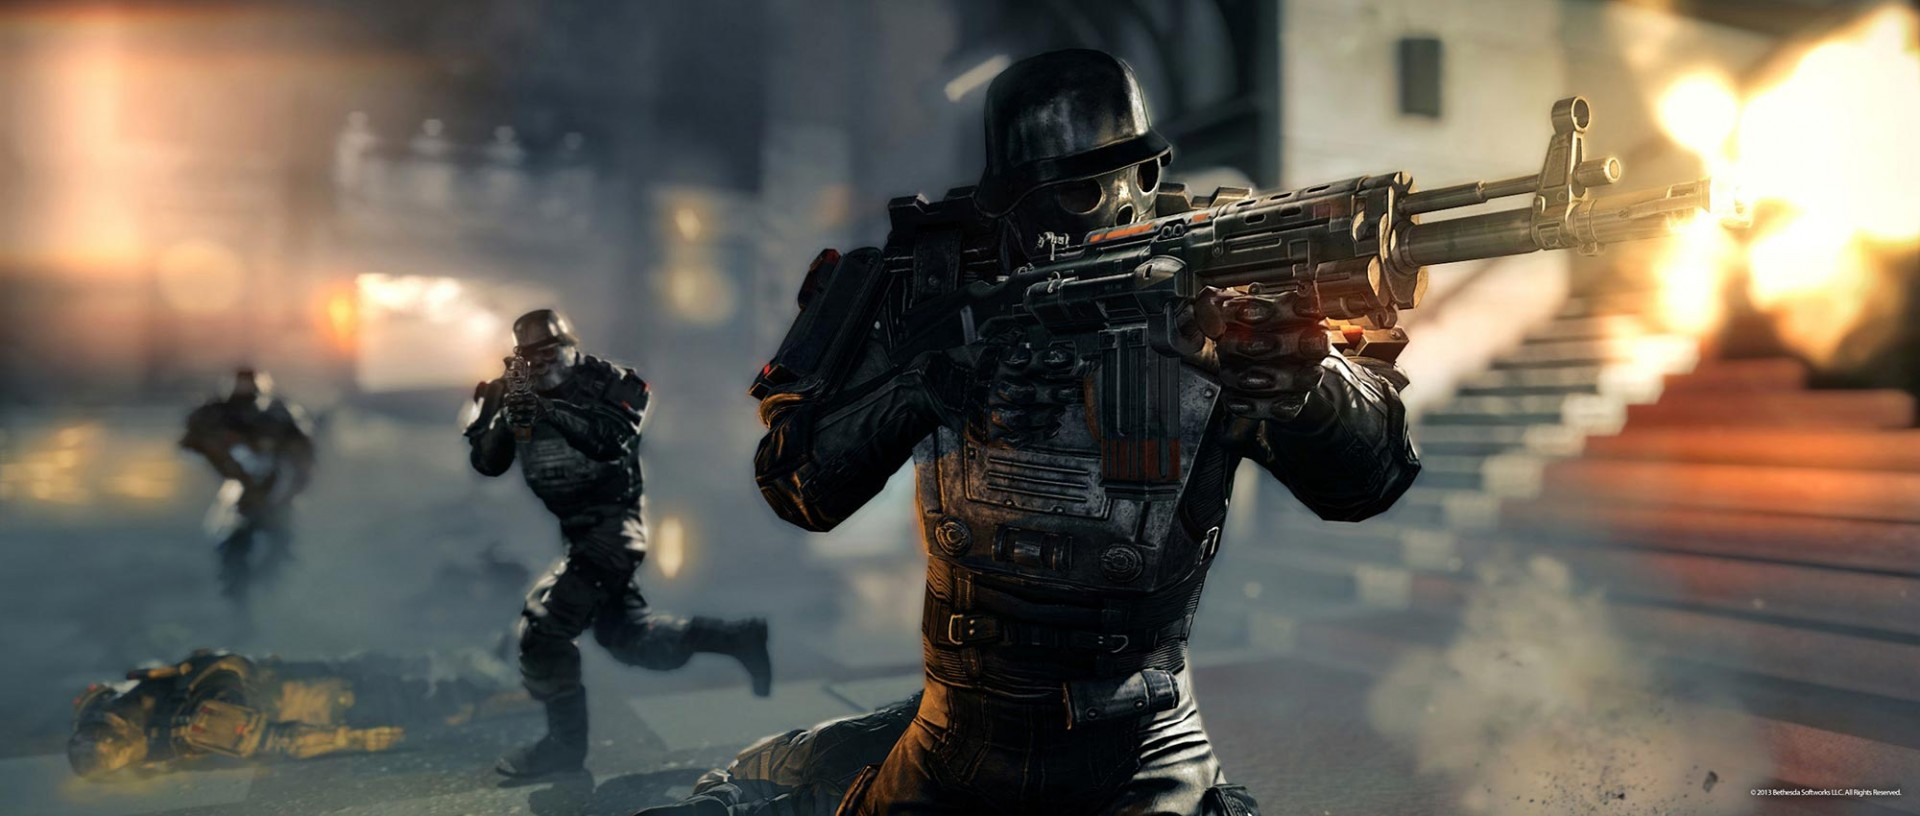 Test Wolfenstein The New Order: Das grandiose Comeback des epischen Ego-Shooters - Wolfenstein: The New Order (Bild: Bethesda)